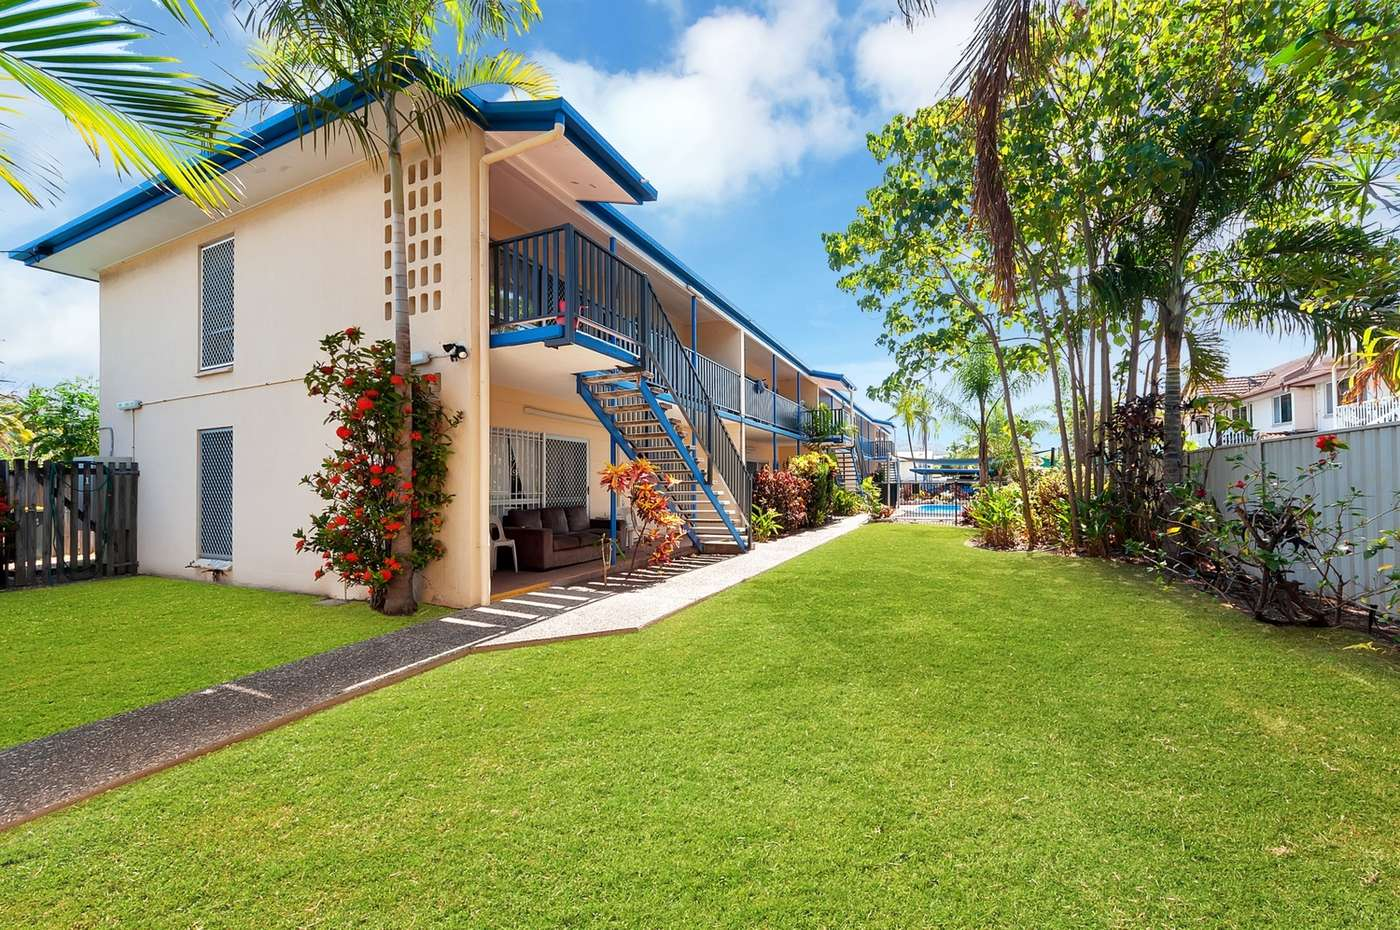 Main view of Homely apartment listing, 4/71 Pease Street, Manoora, QLD 4870